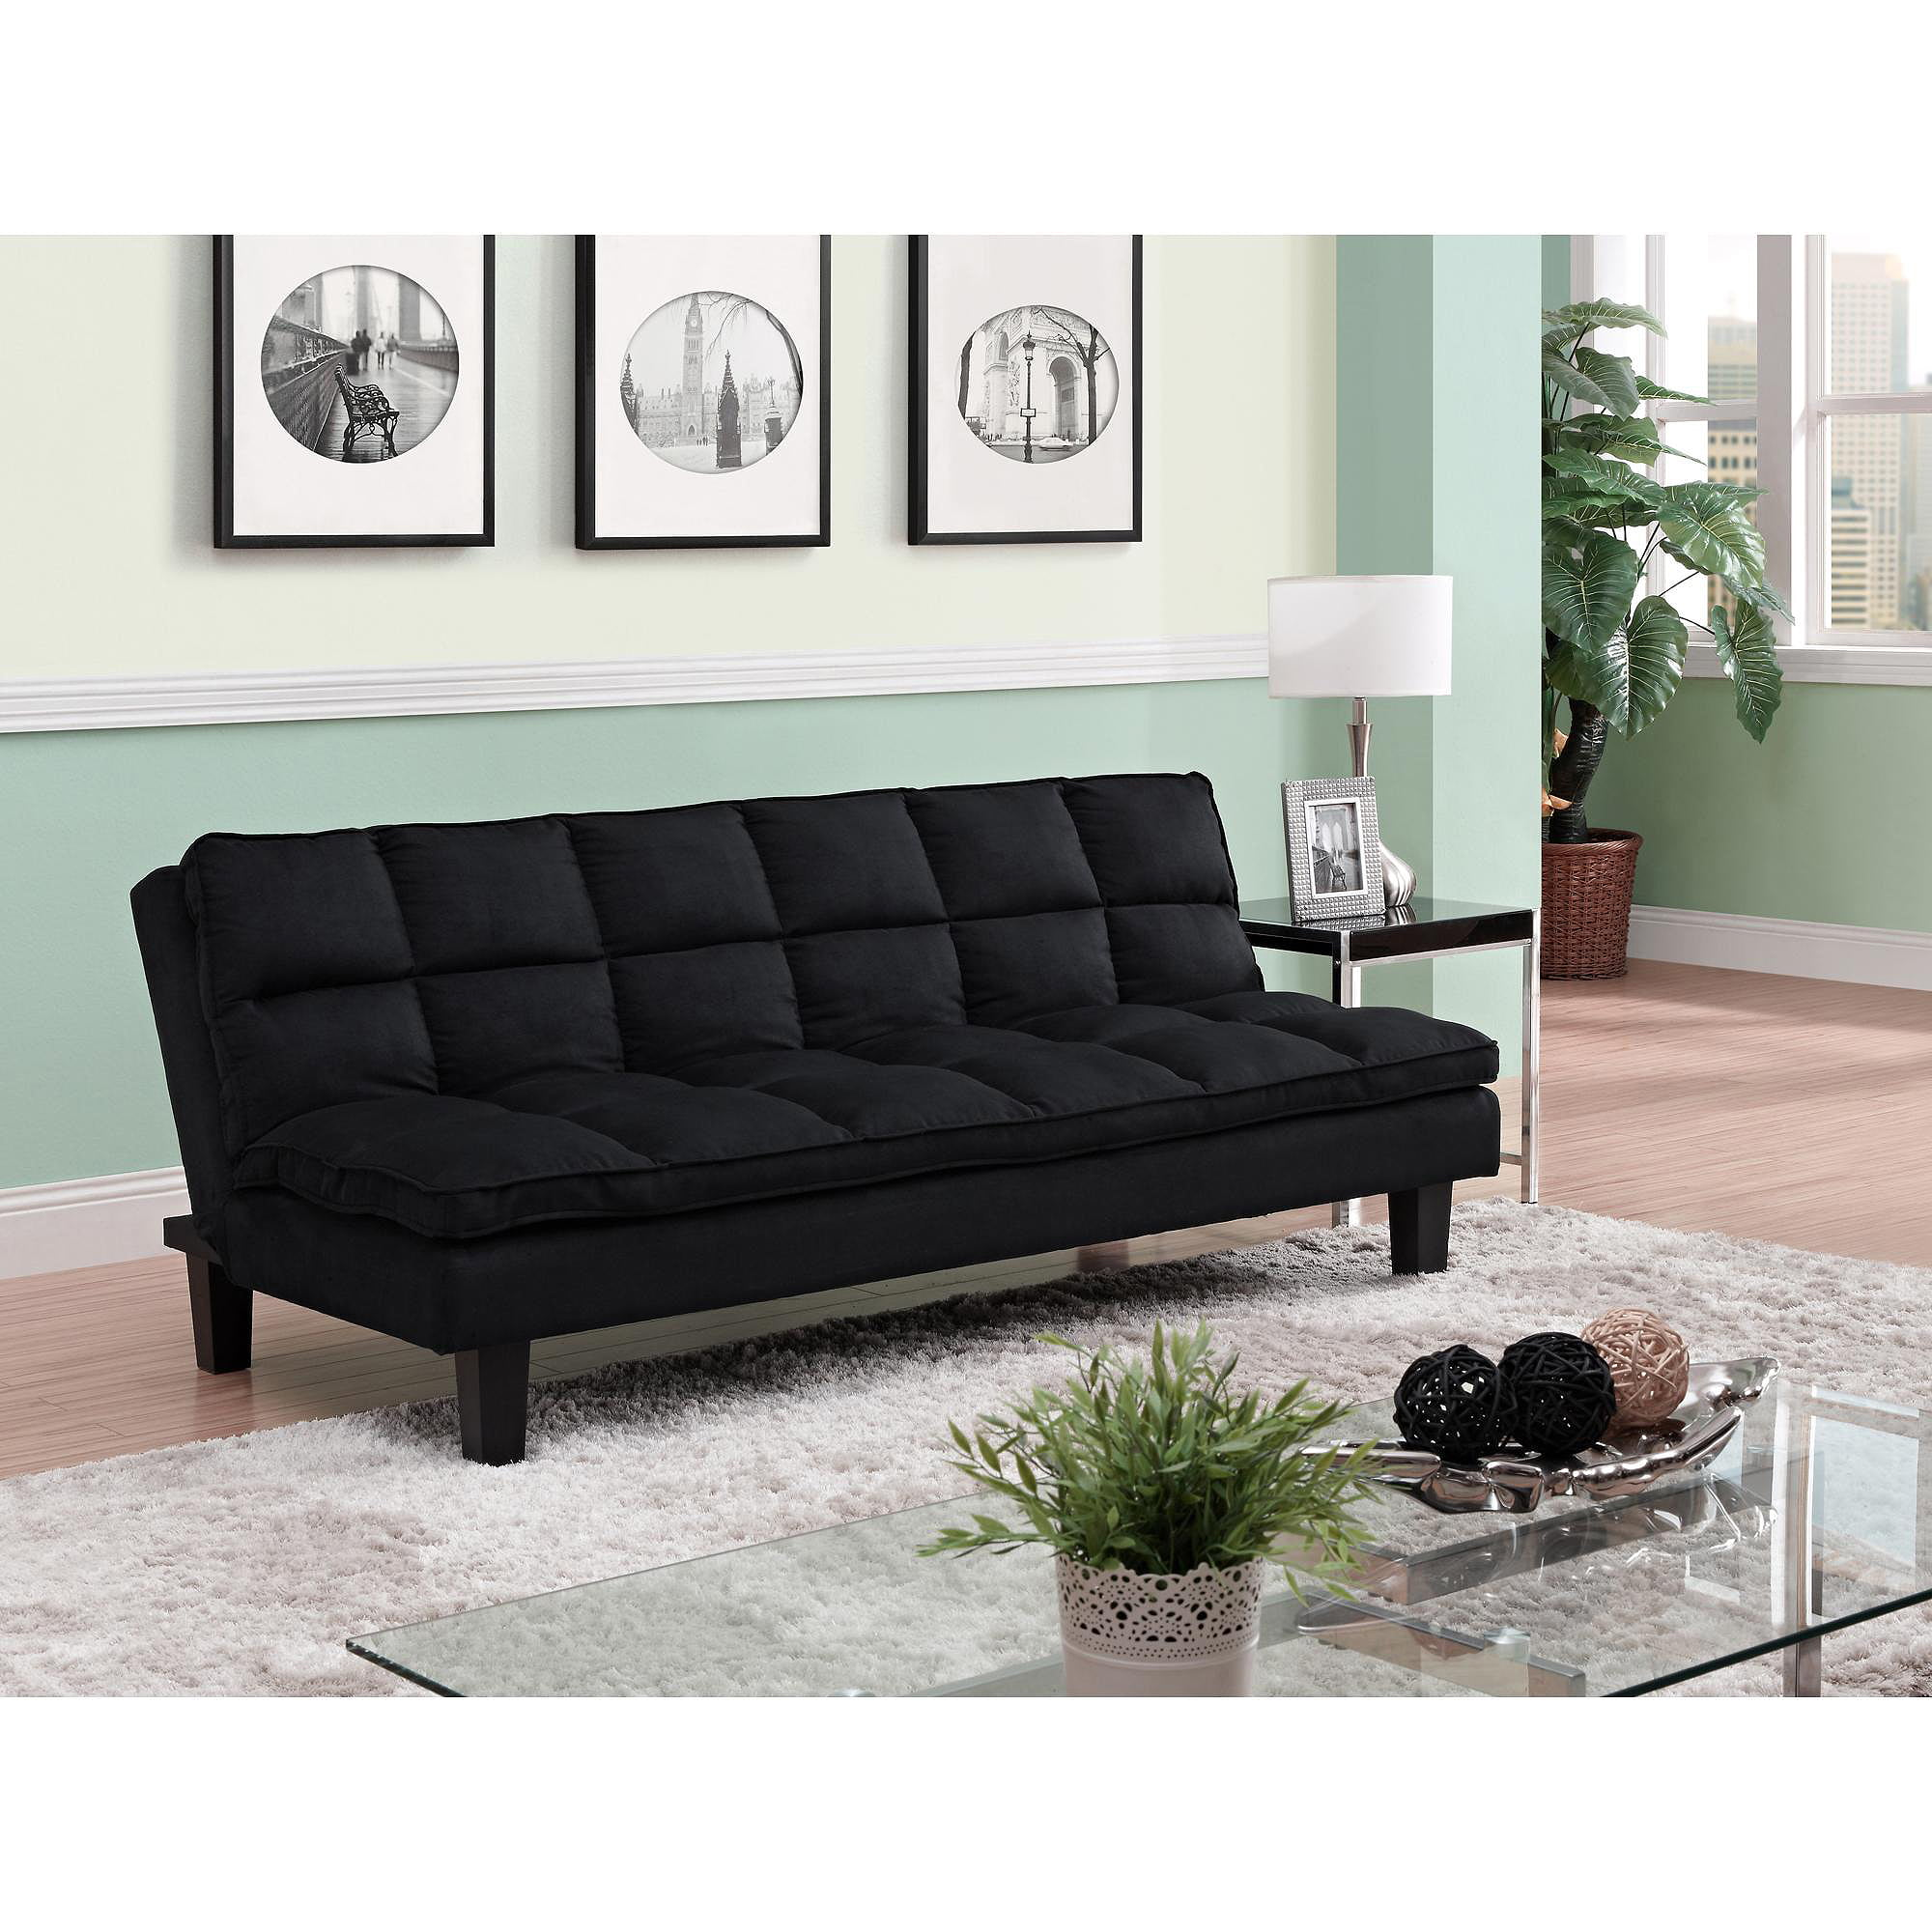 dhp futon youtube splitback futons delaney watch